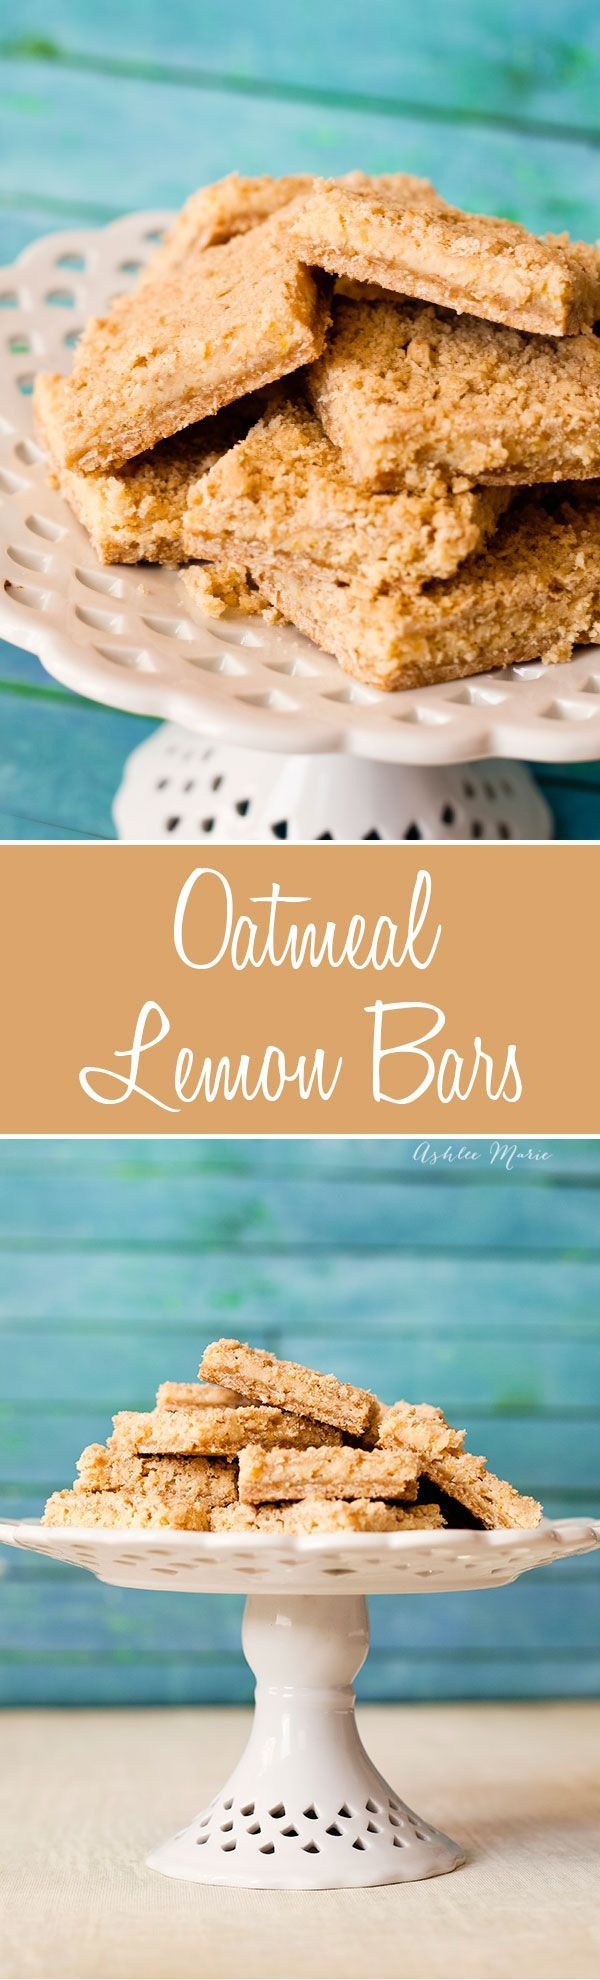 these oatmeal lemon bars are different from traditional bars, they have a great crust, top and bottom with a tart, creamy lemon center